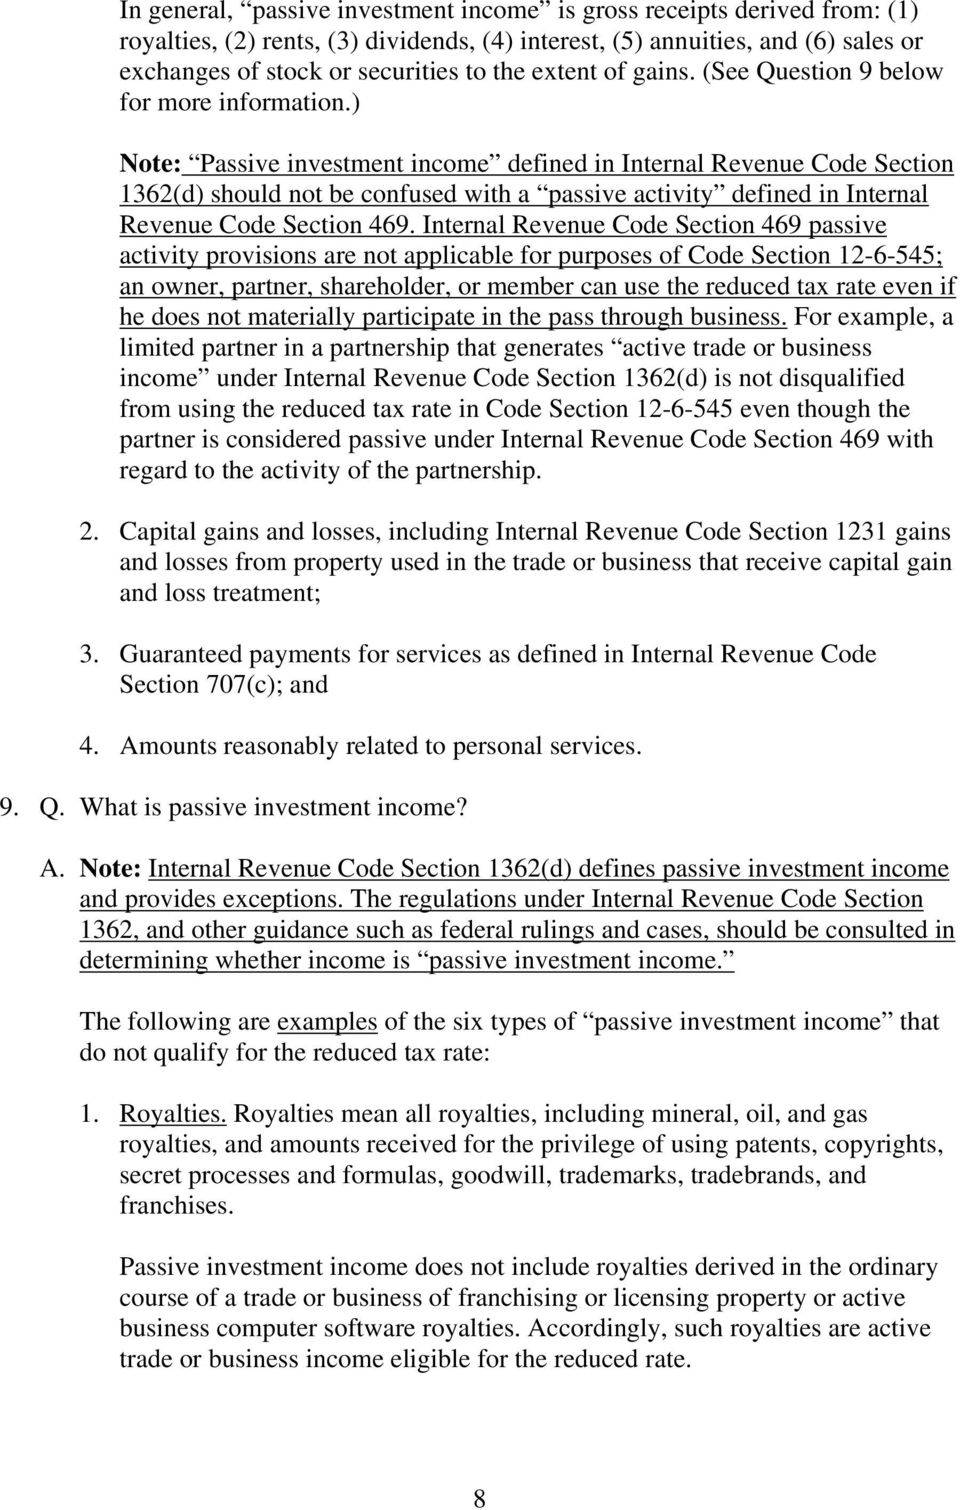 ) Note: Passive investment income defined in Internal Revenue Code Section 1362(d) should not be confused with a passive activity defined in Internal Revenue Code Section 469.